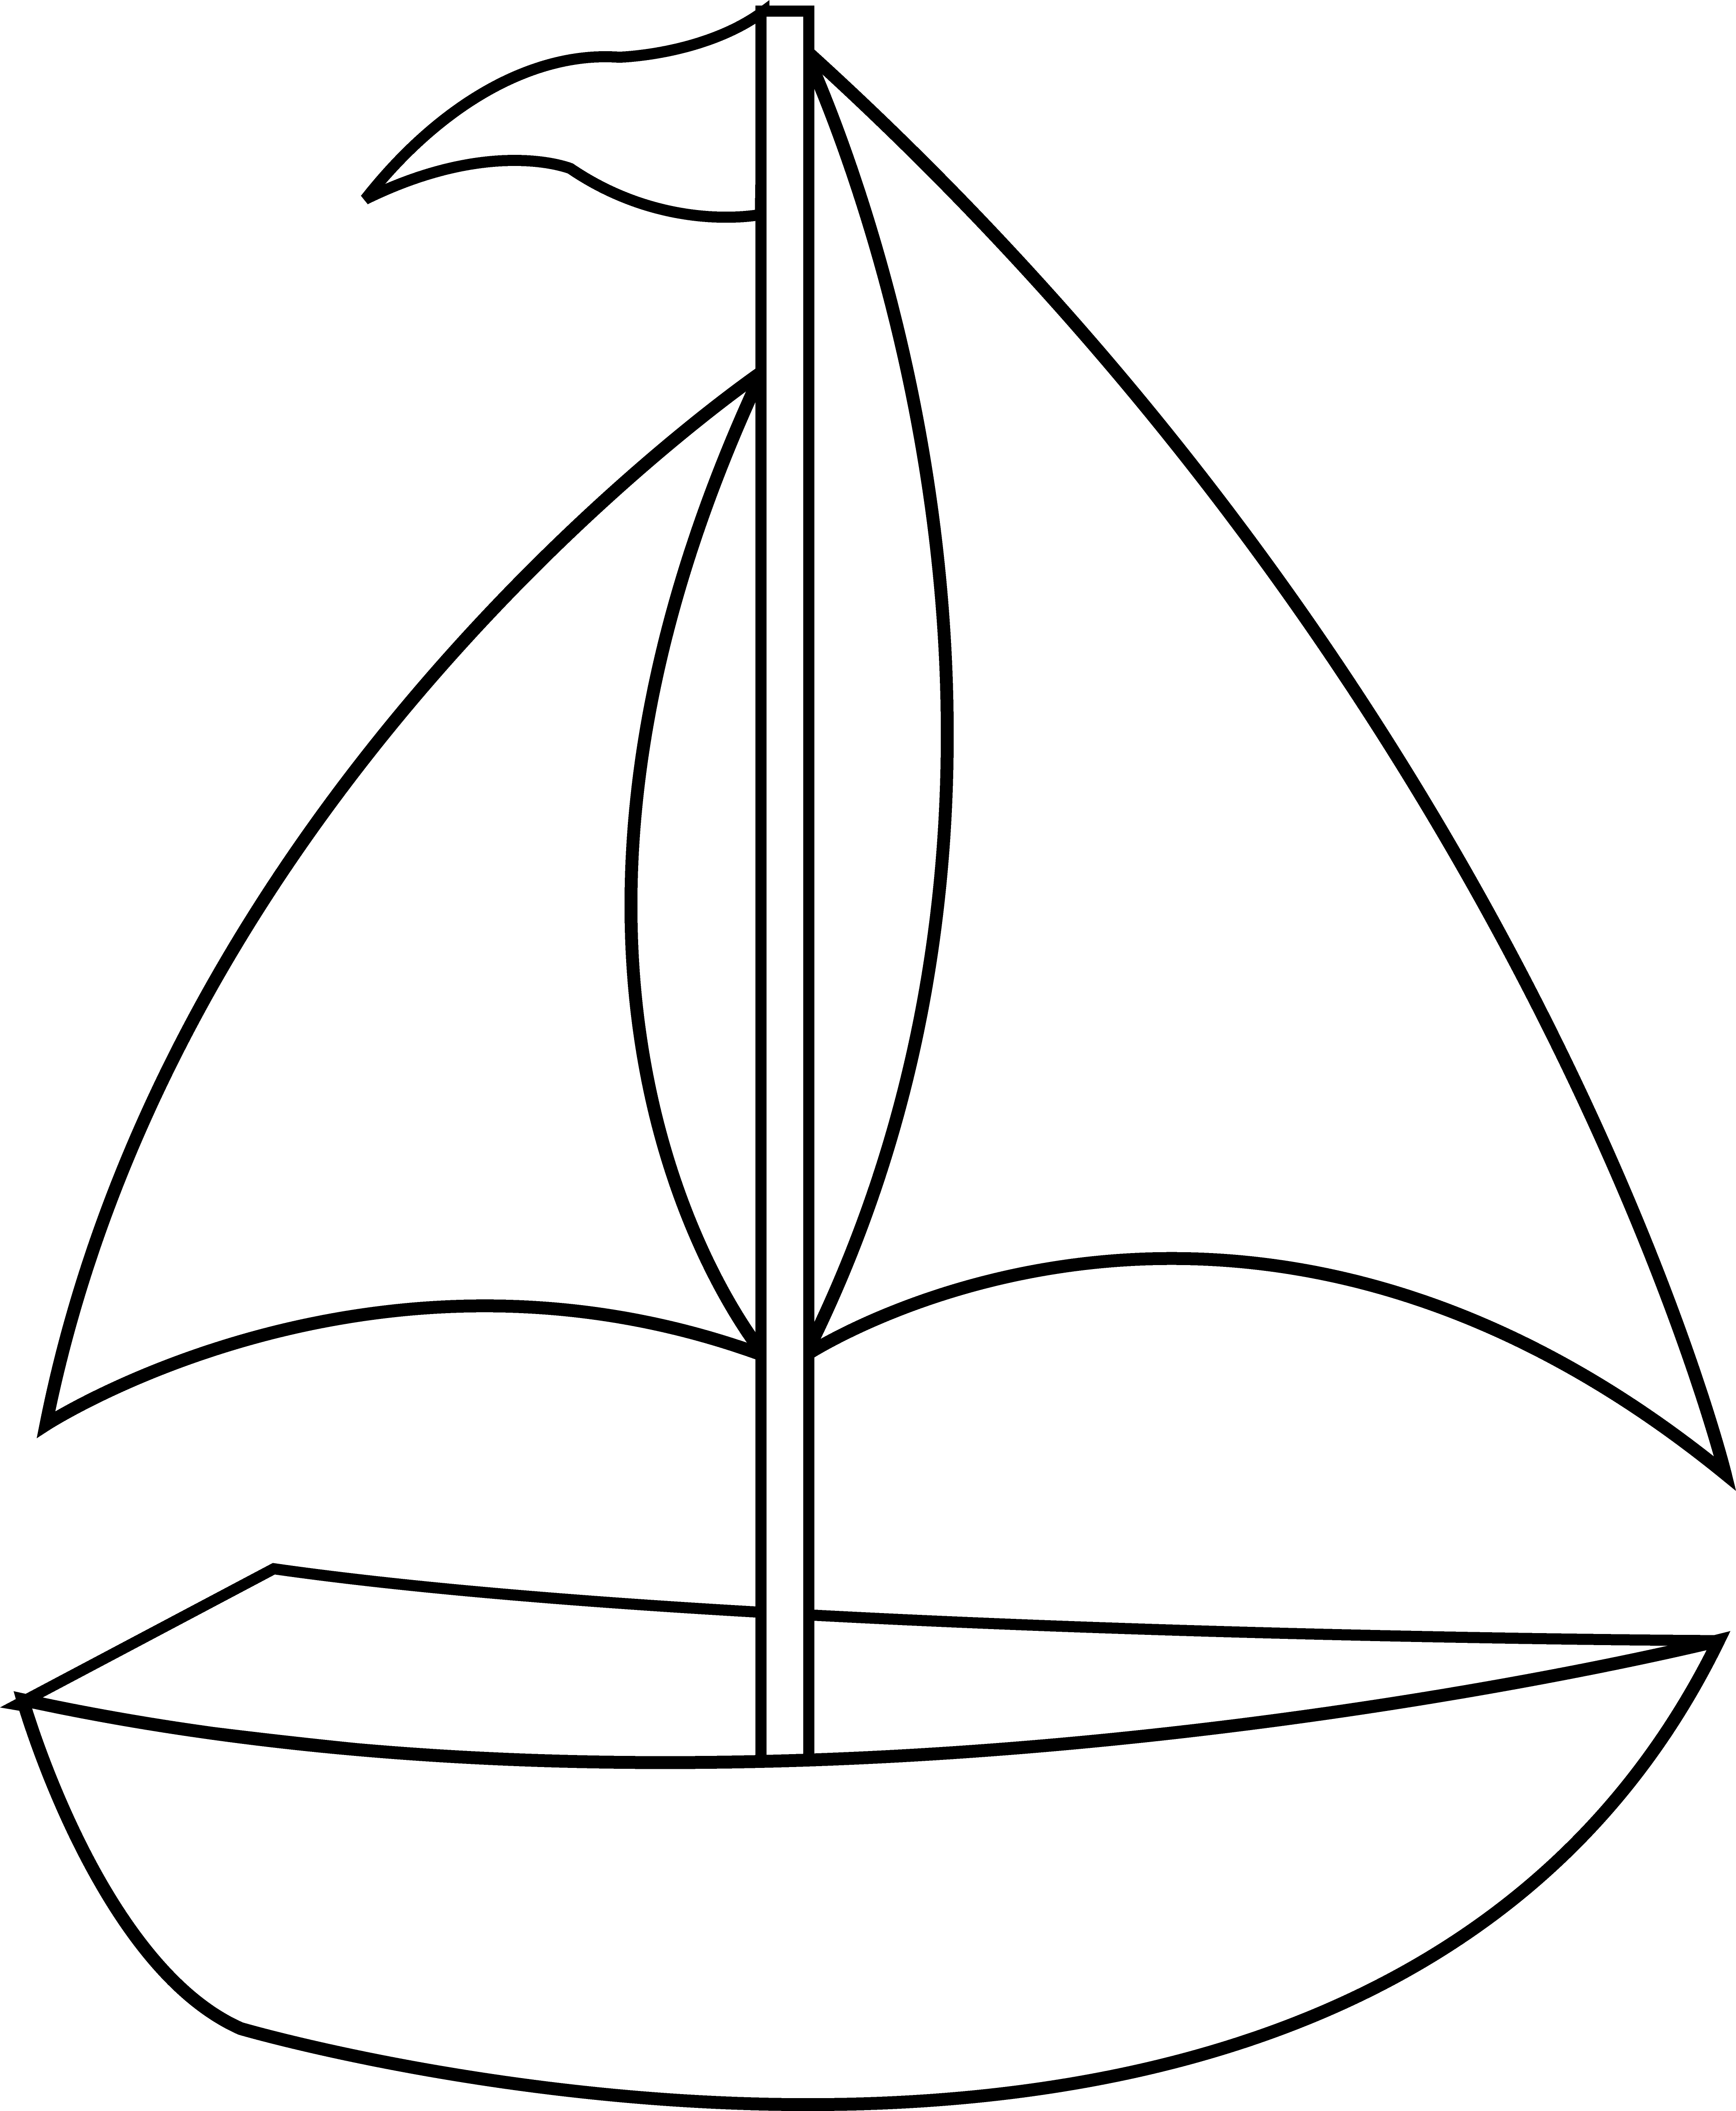 Colorable sailboat line art. Nautical clipart black and white